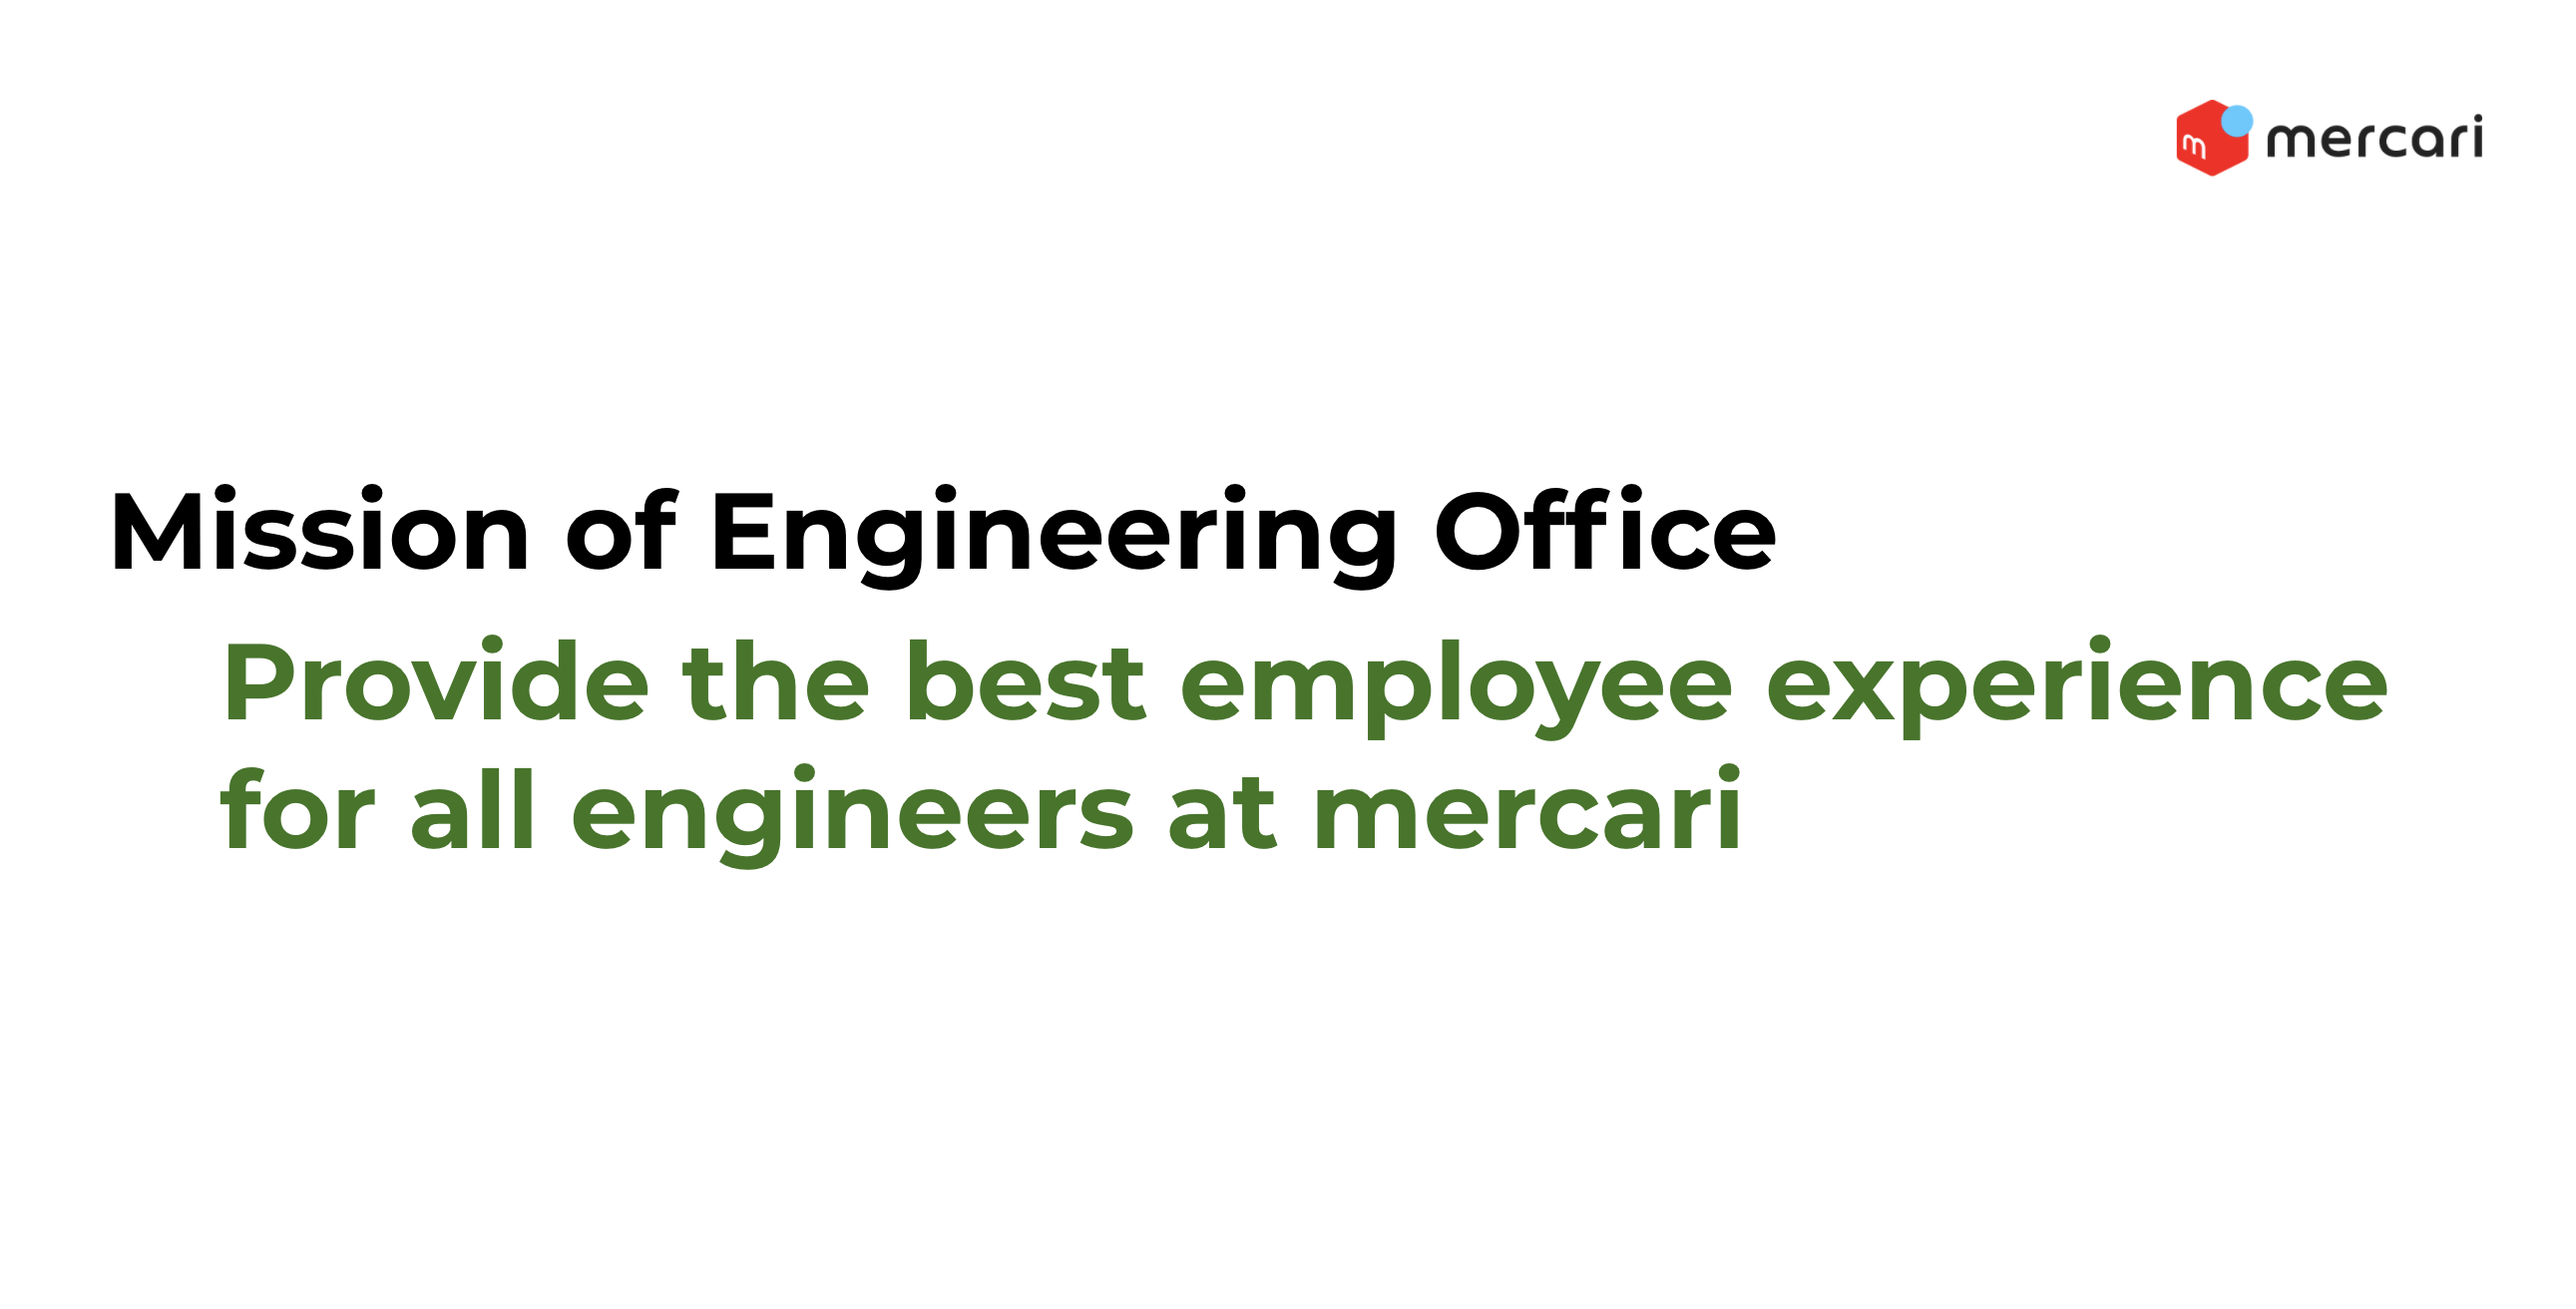 What Engineering office actually is